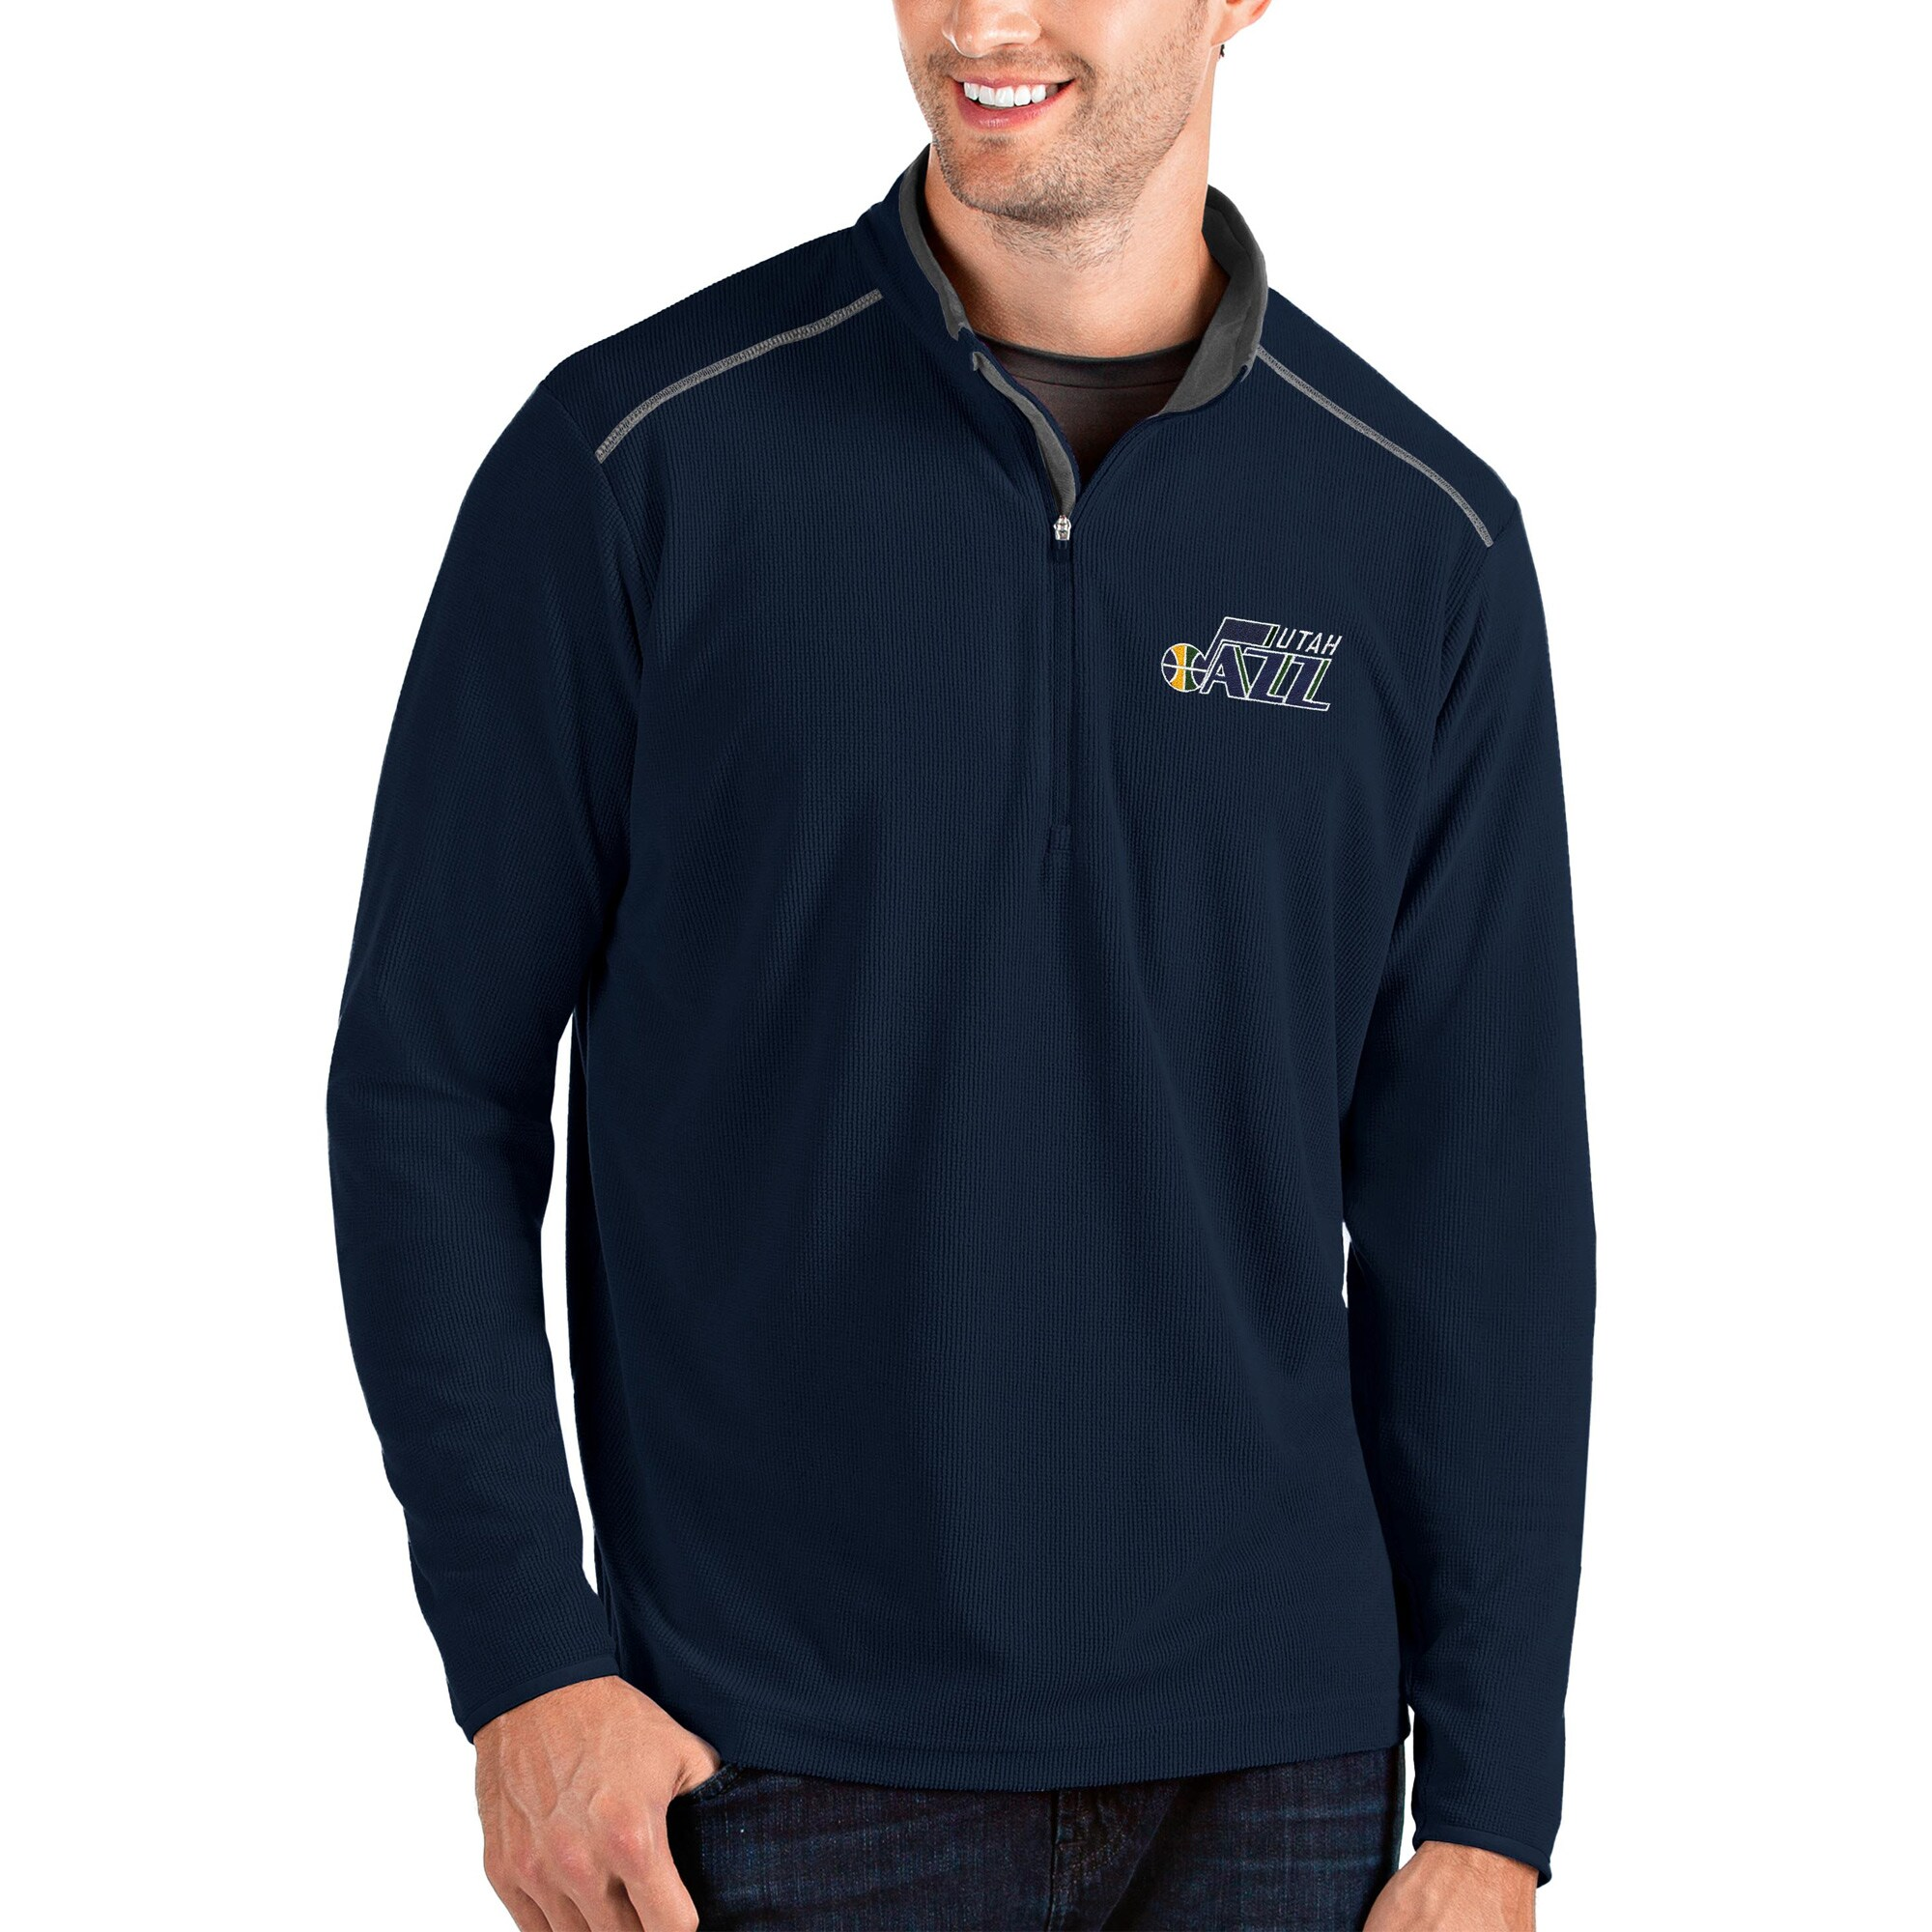 Utah Jazz Antigua Glacier Quarter-Zip Pullover Jacket - Navy/Gray